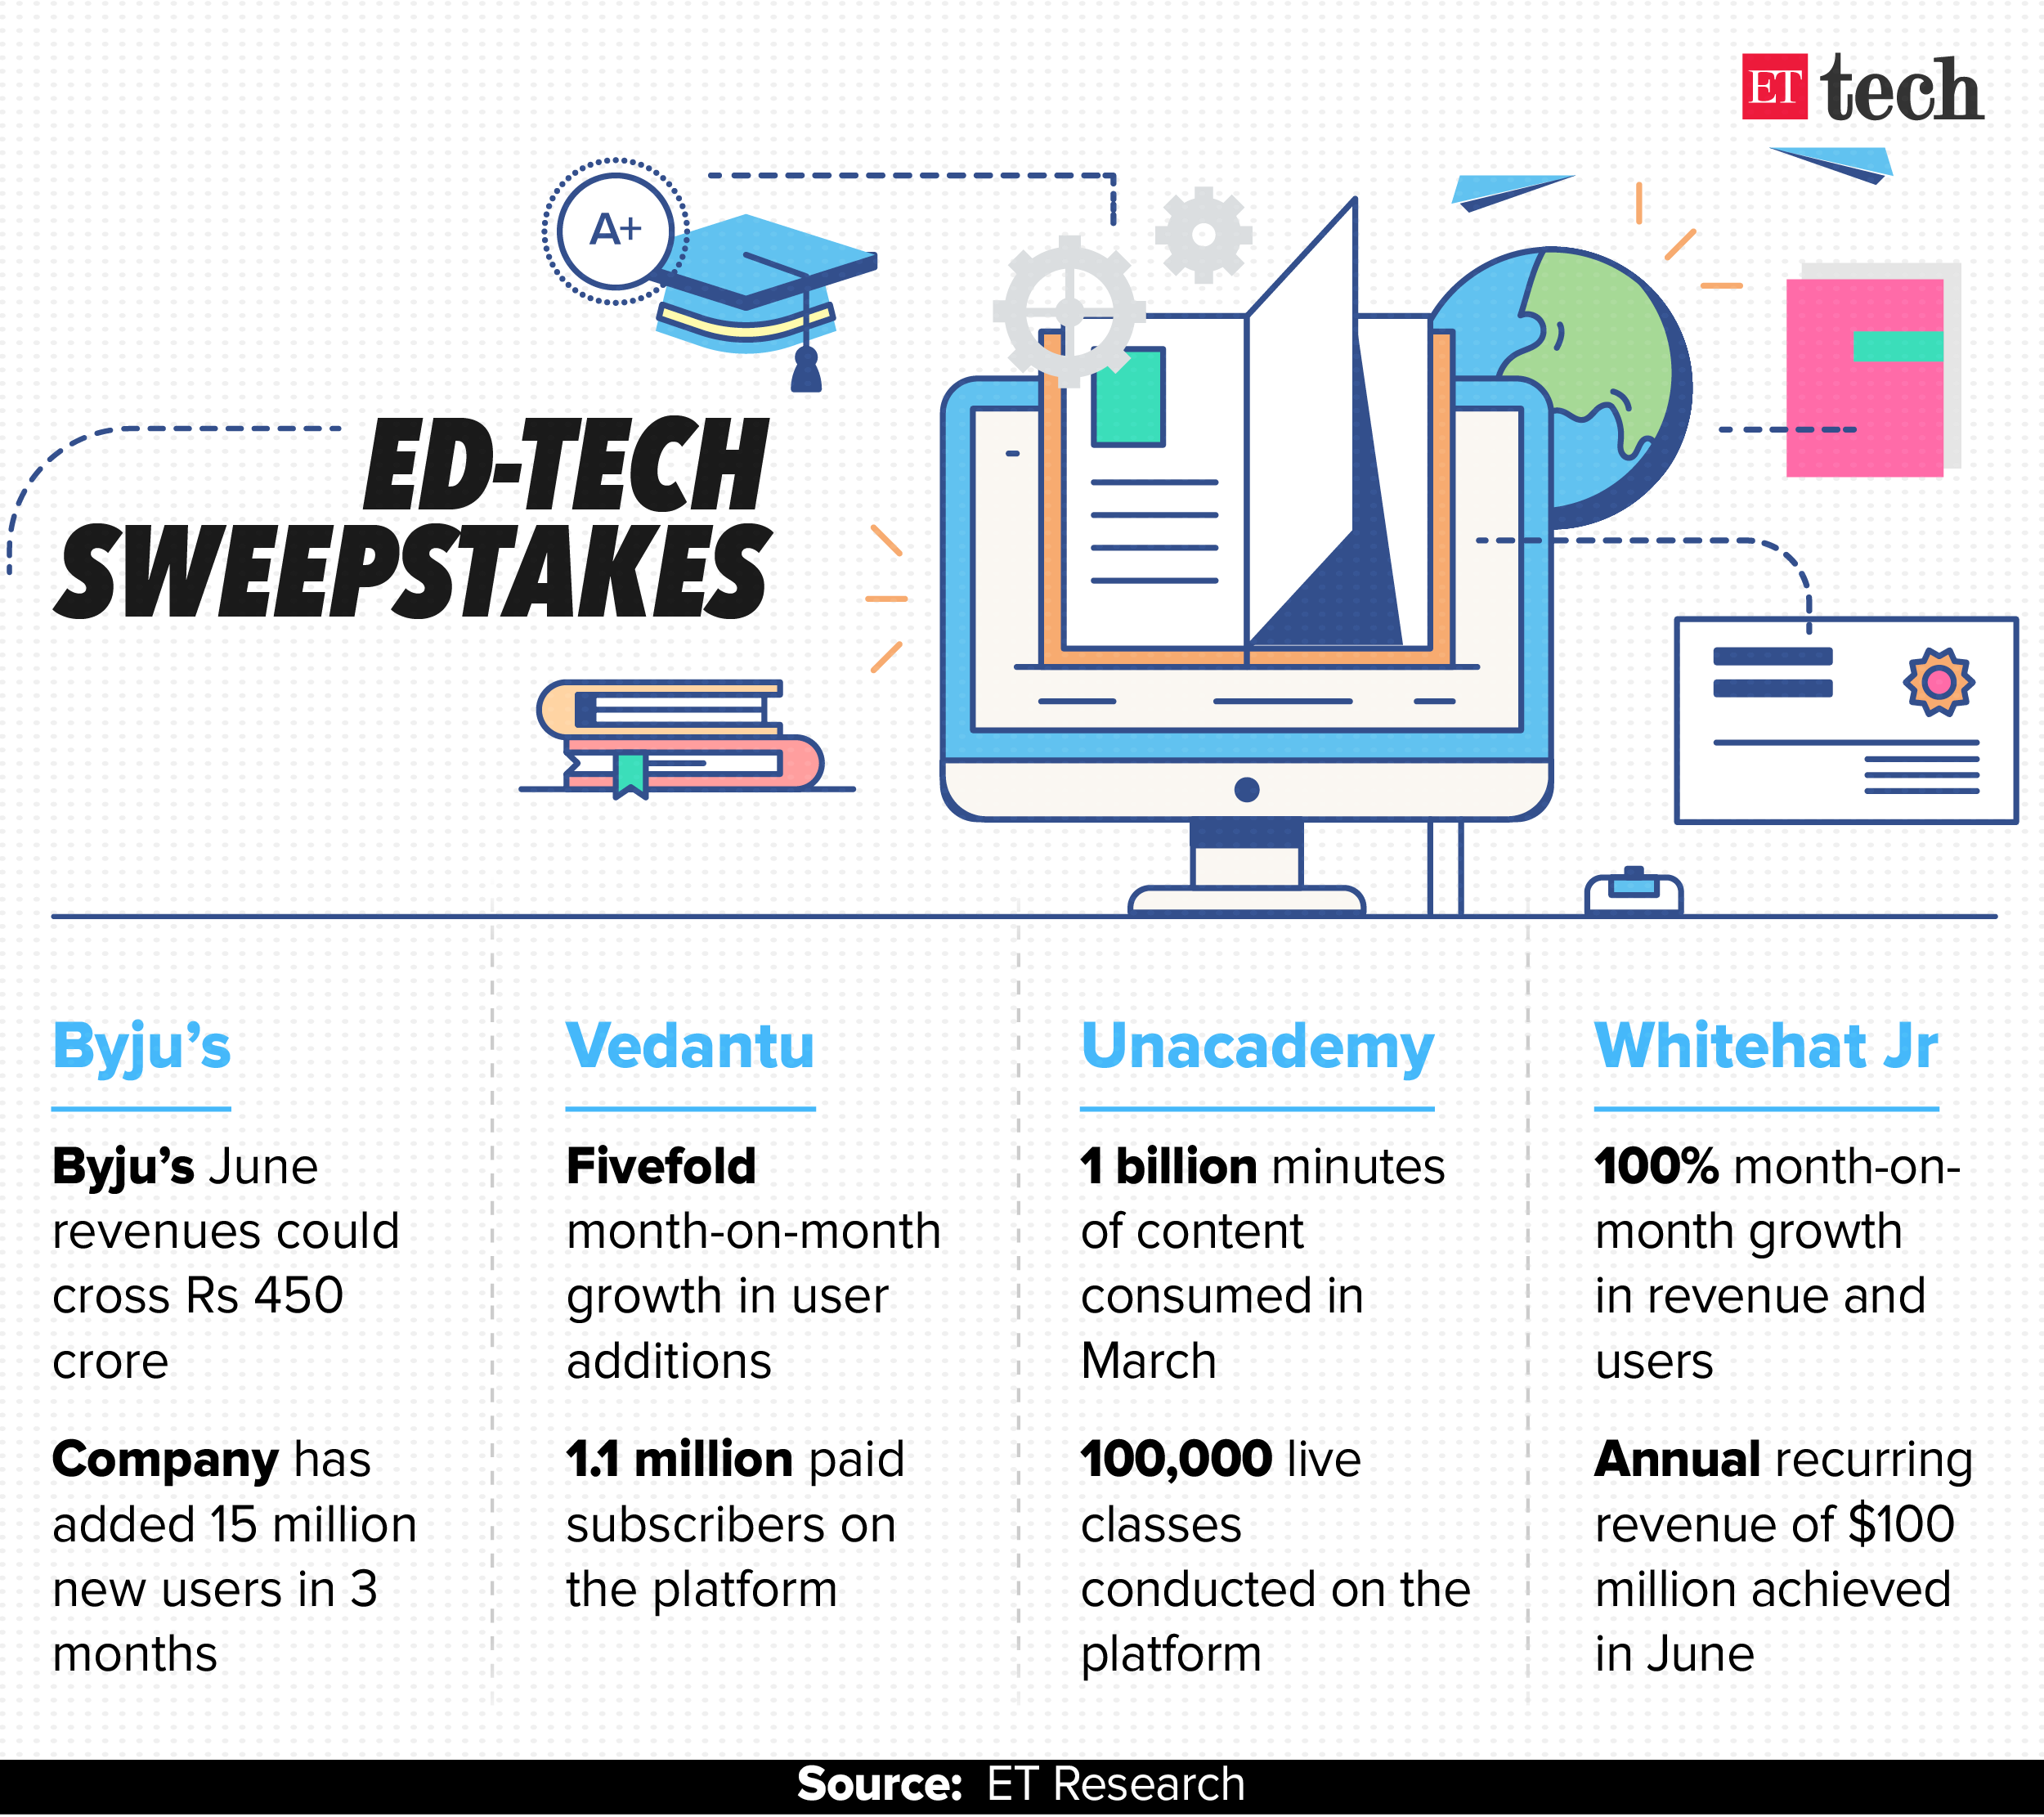 ETtech Top 5: Chinese smartphone share decline, Ather funding & more